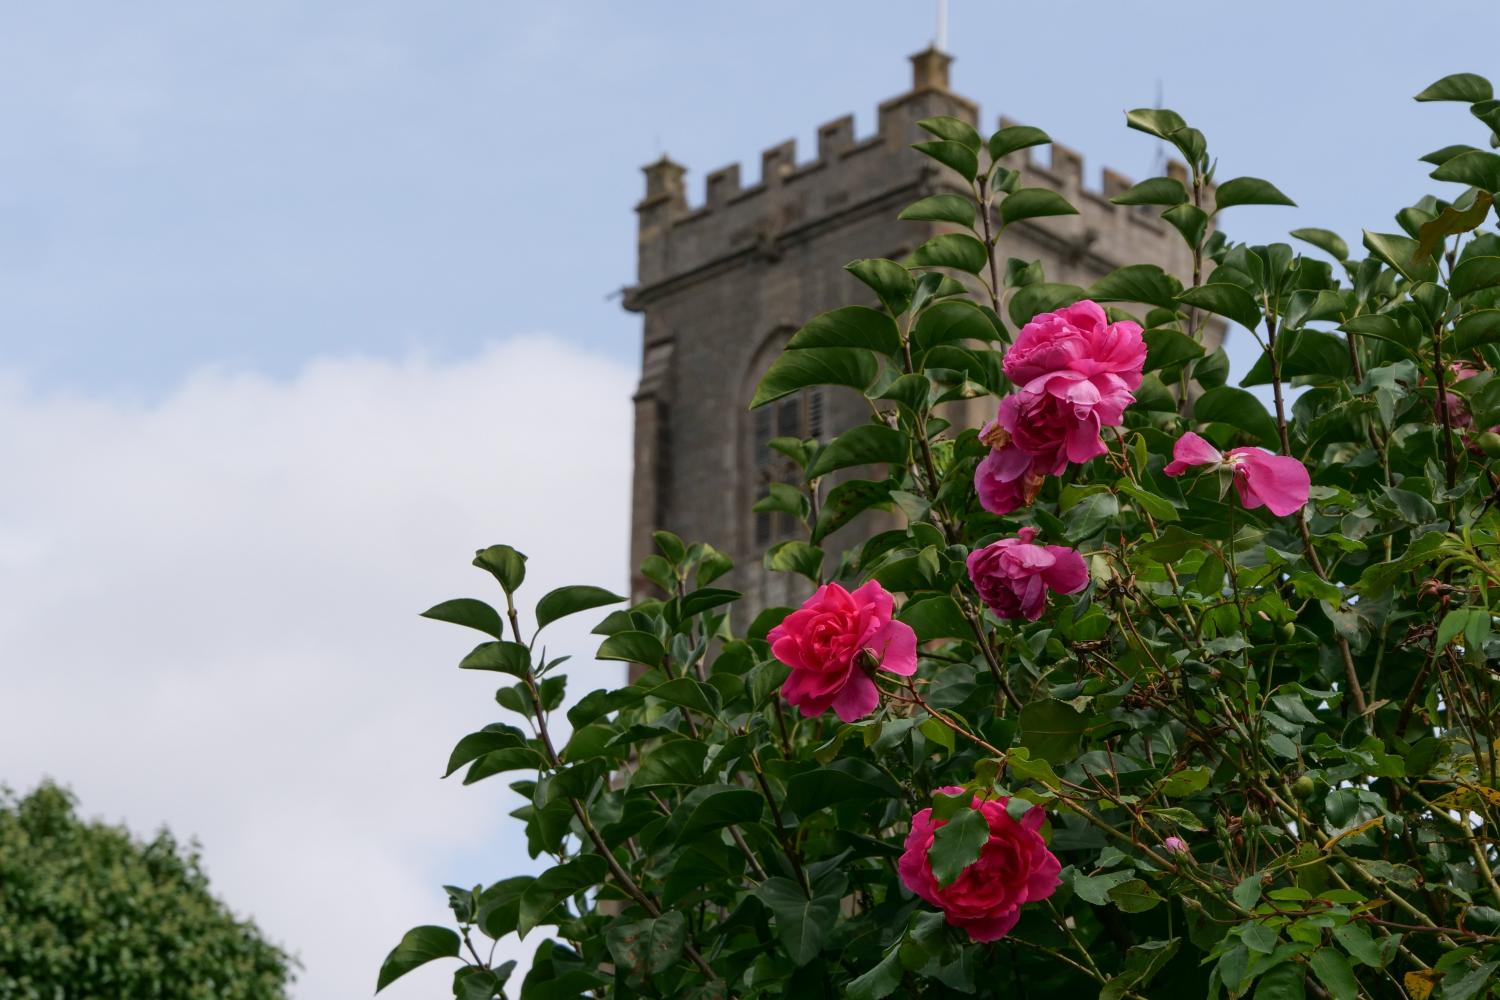 Views to the church from the garden